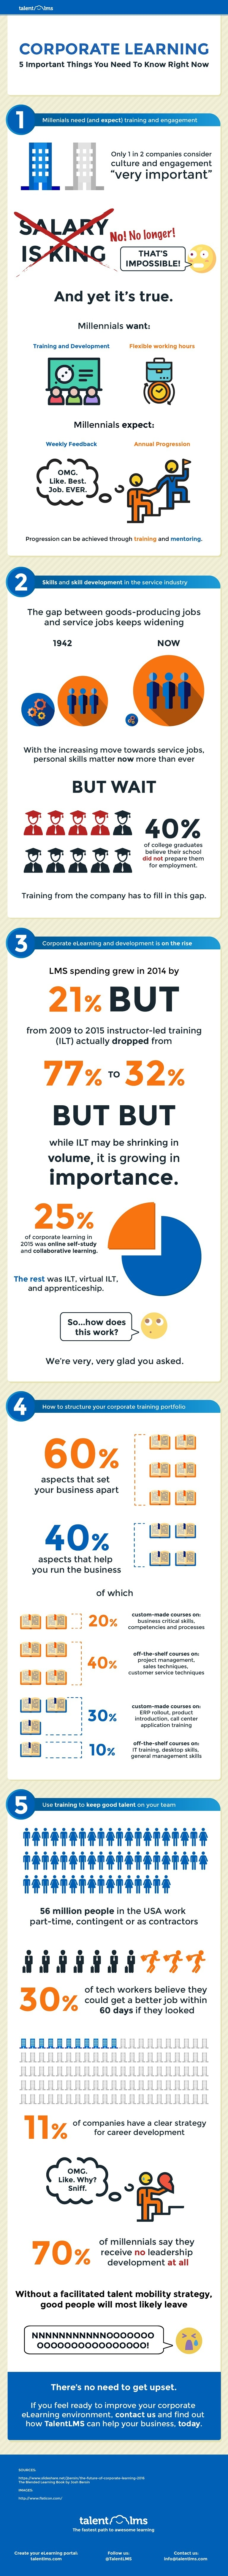 What You Need To Know about Corporate Learning Infographic